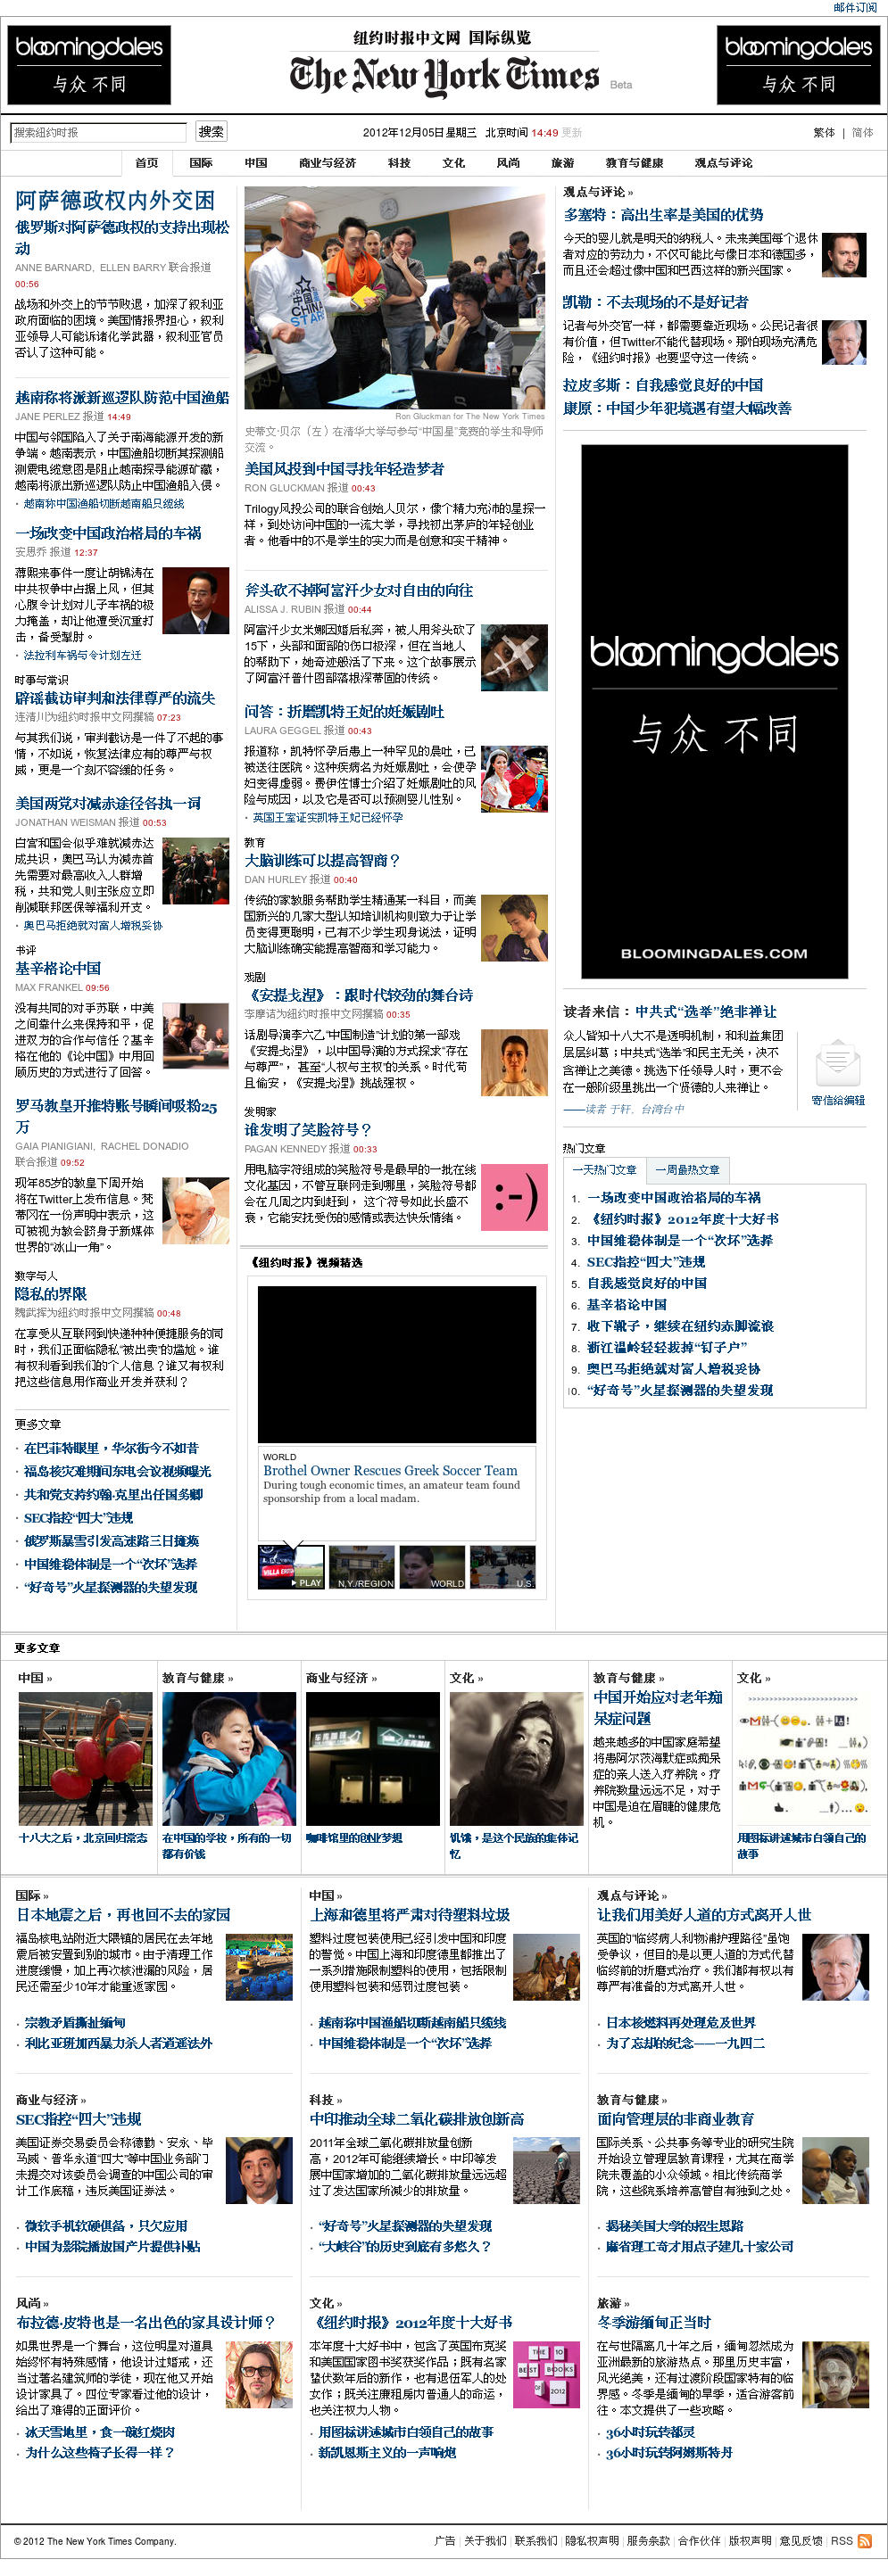 The New York Times (Chinese) at Wednesday Dec. 5, 2012, 8:24 a.m. UTC